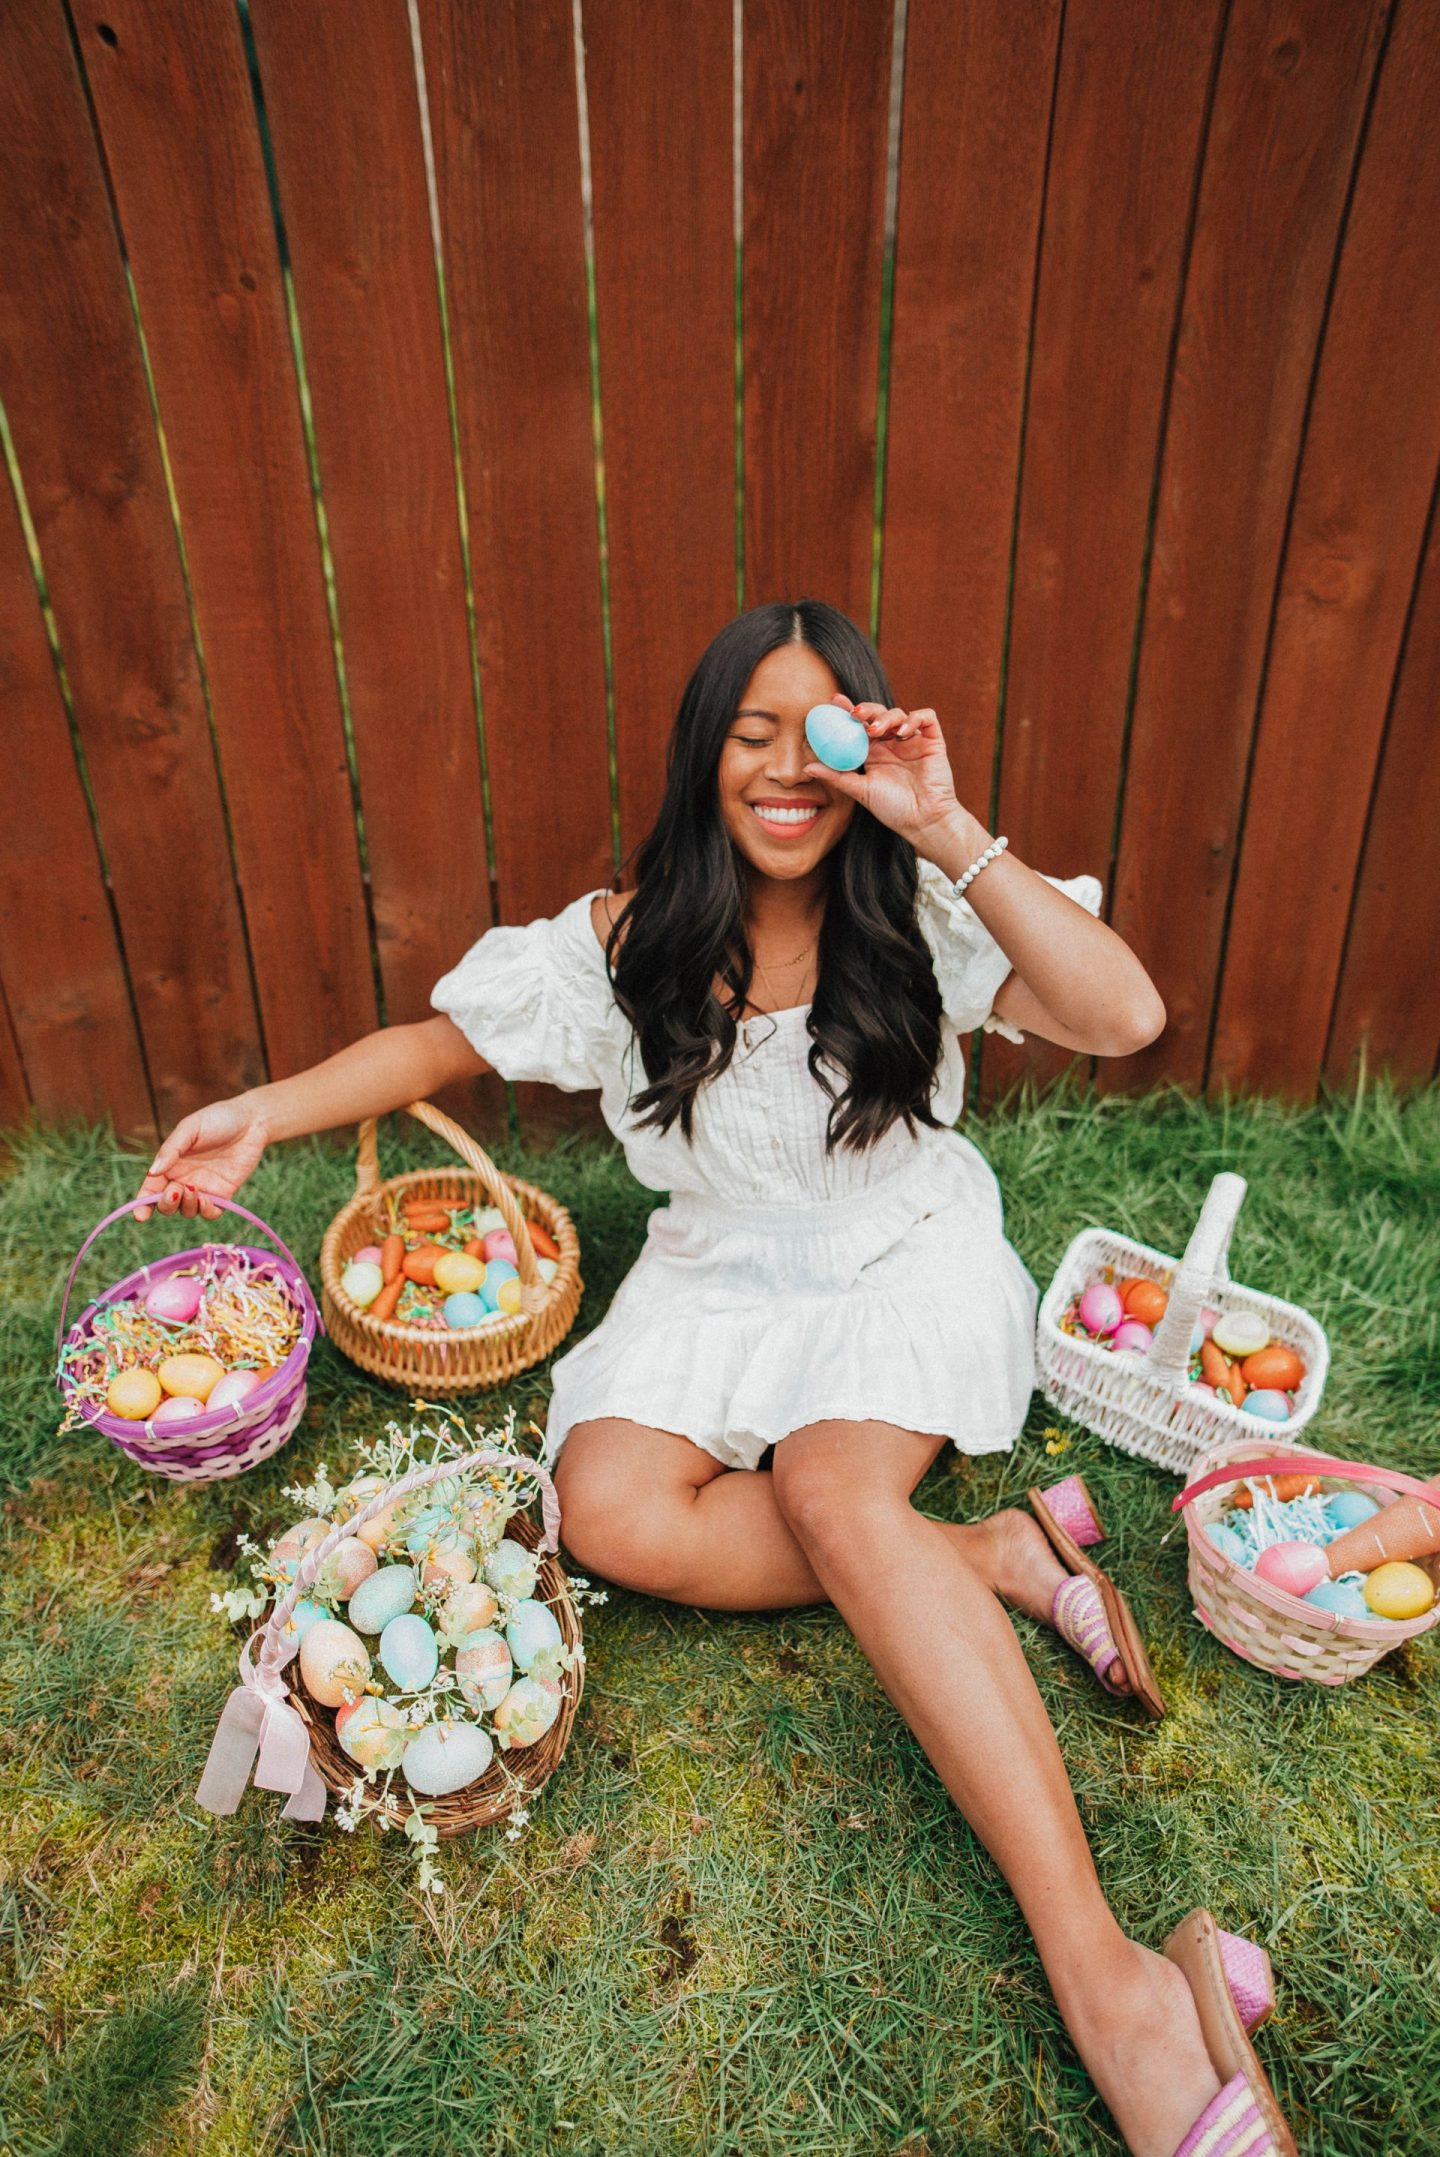 Cover one eye with an Easter egg - Easter posing ideas - Easter baskets - Easter egg hunt - Easter photo shoot ideas - Easter dresses - Easter outfits - image from www.emmasedition - copyright @emmasedition